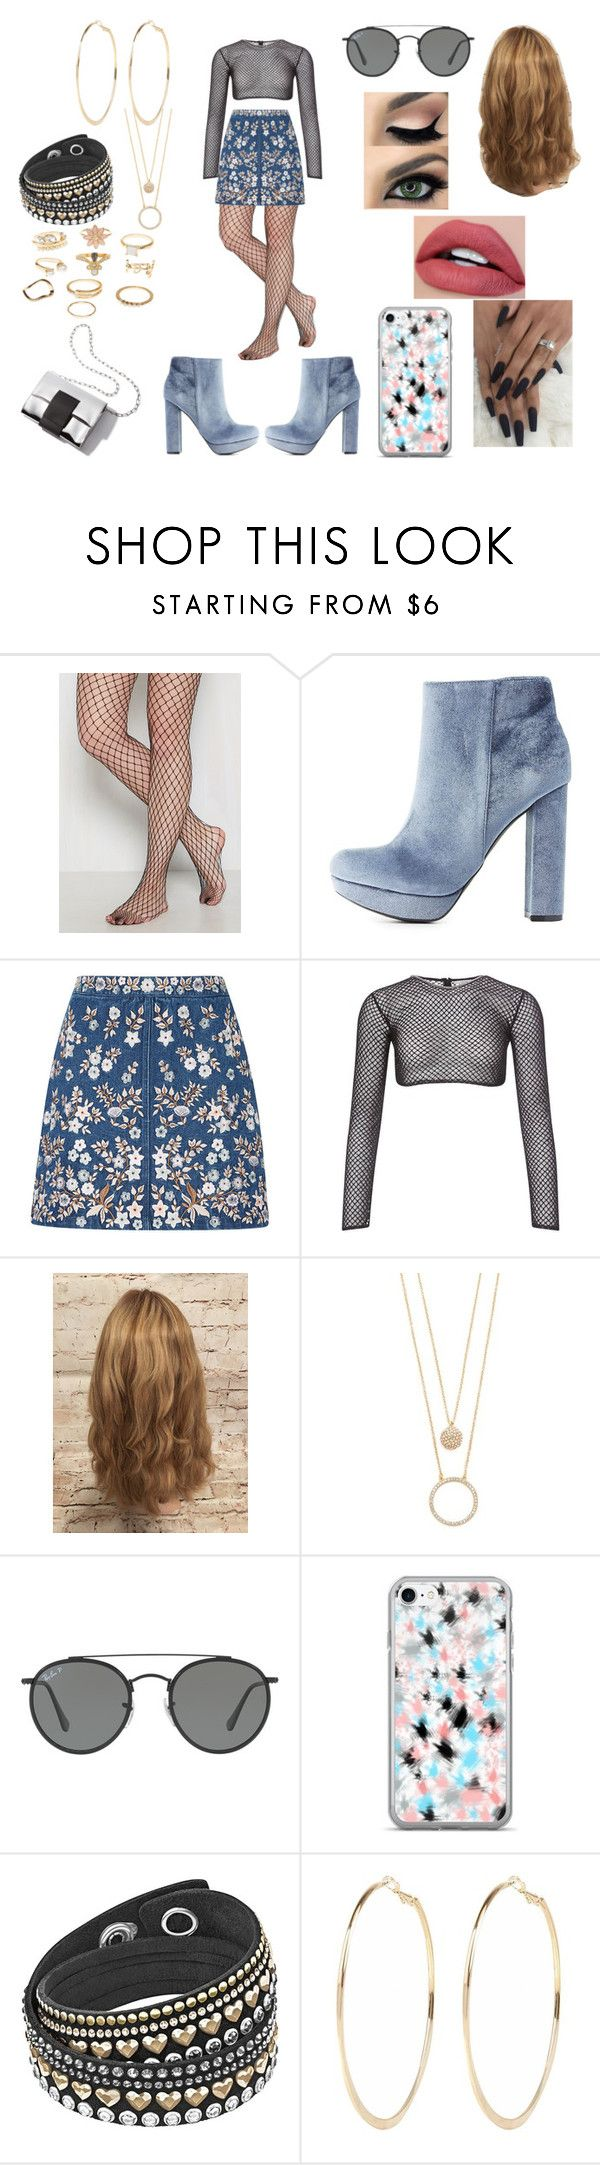 """""""Spring City"""" by roxy-crushlings on Polyvore featuring Charlotte Russe, Needle & Thread, PA5H, Kate Spade, Ray-Ban and River Island"""